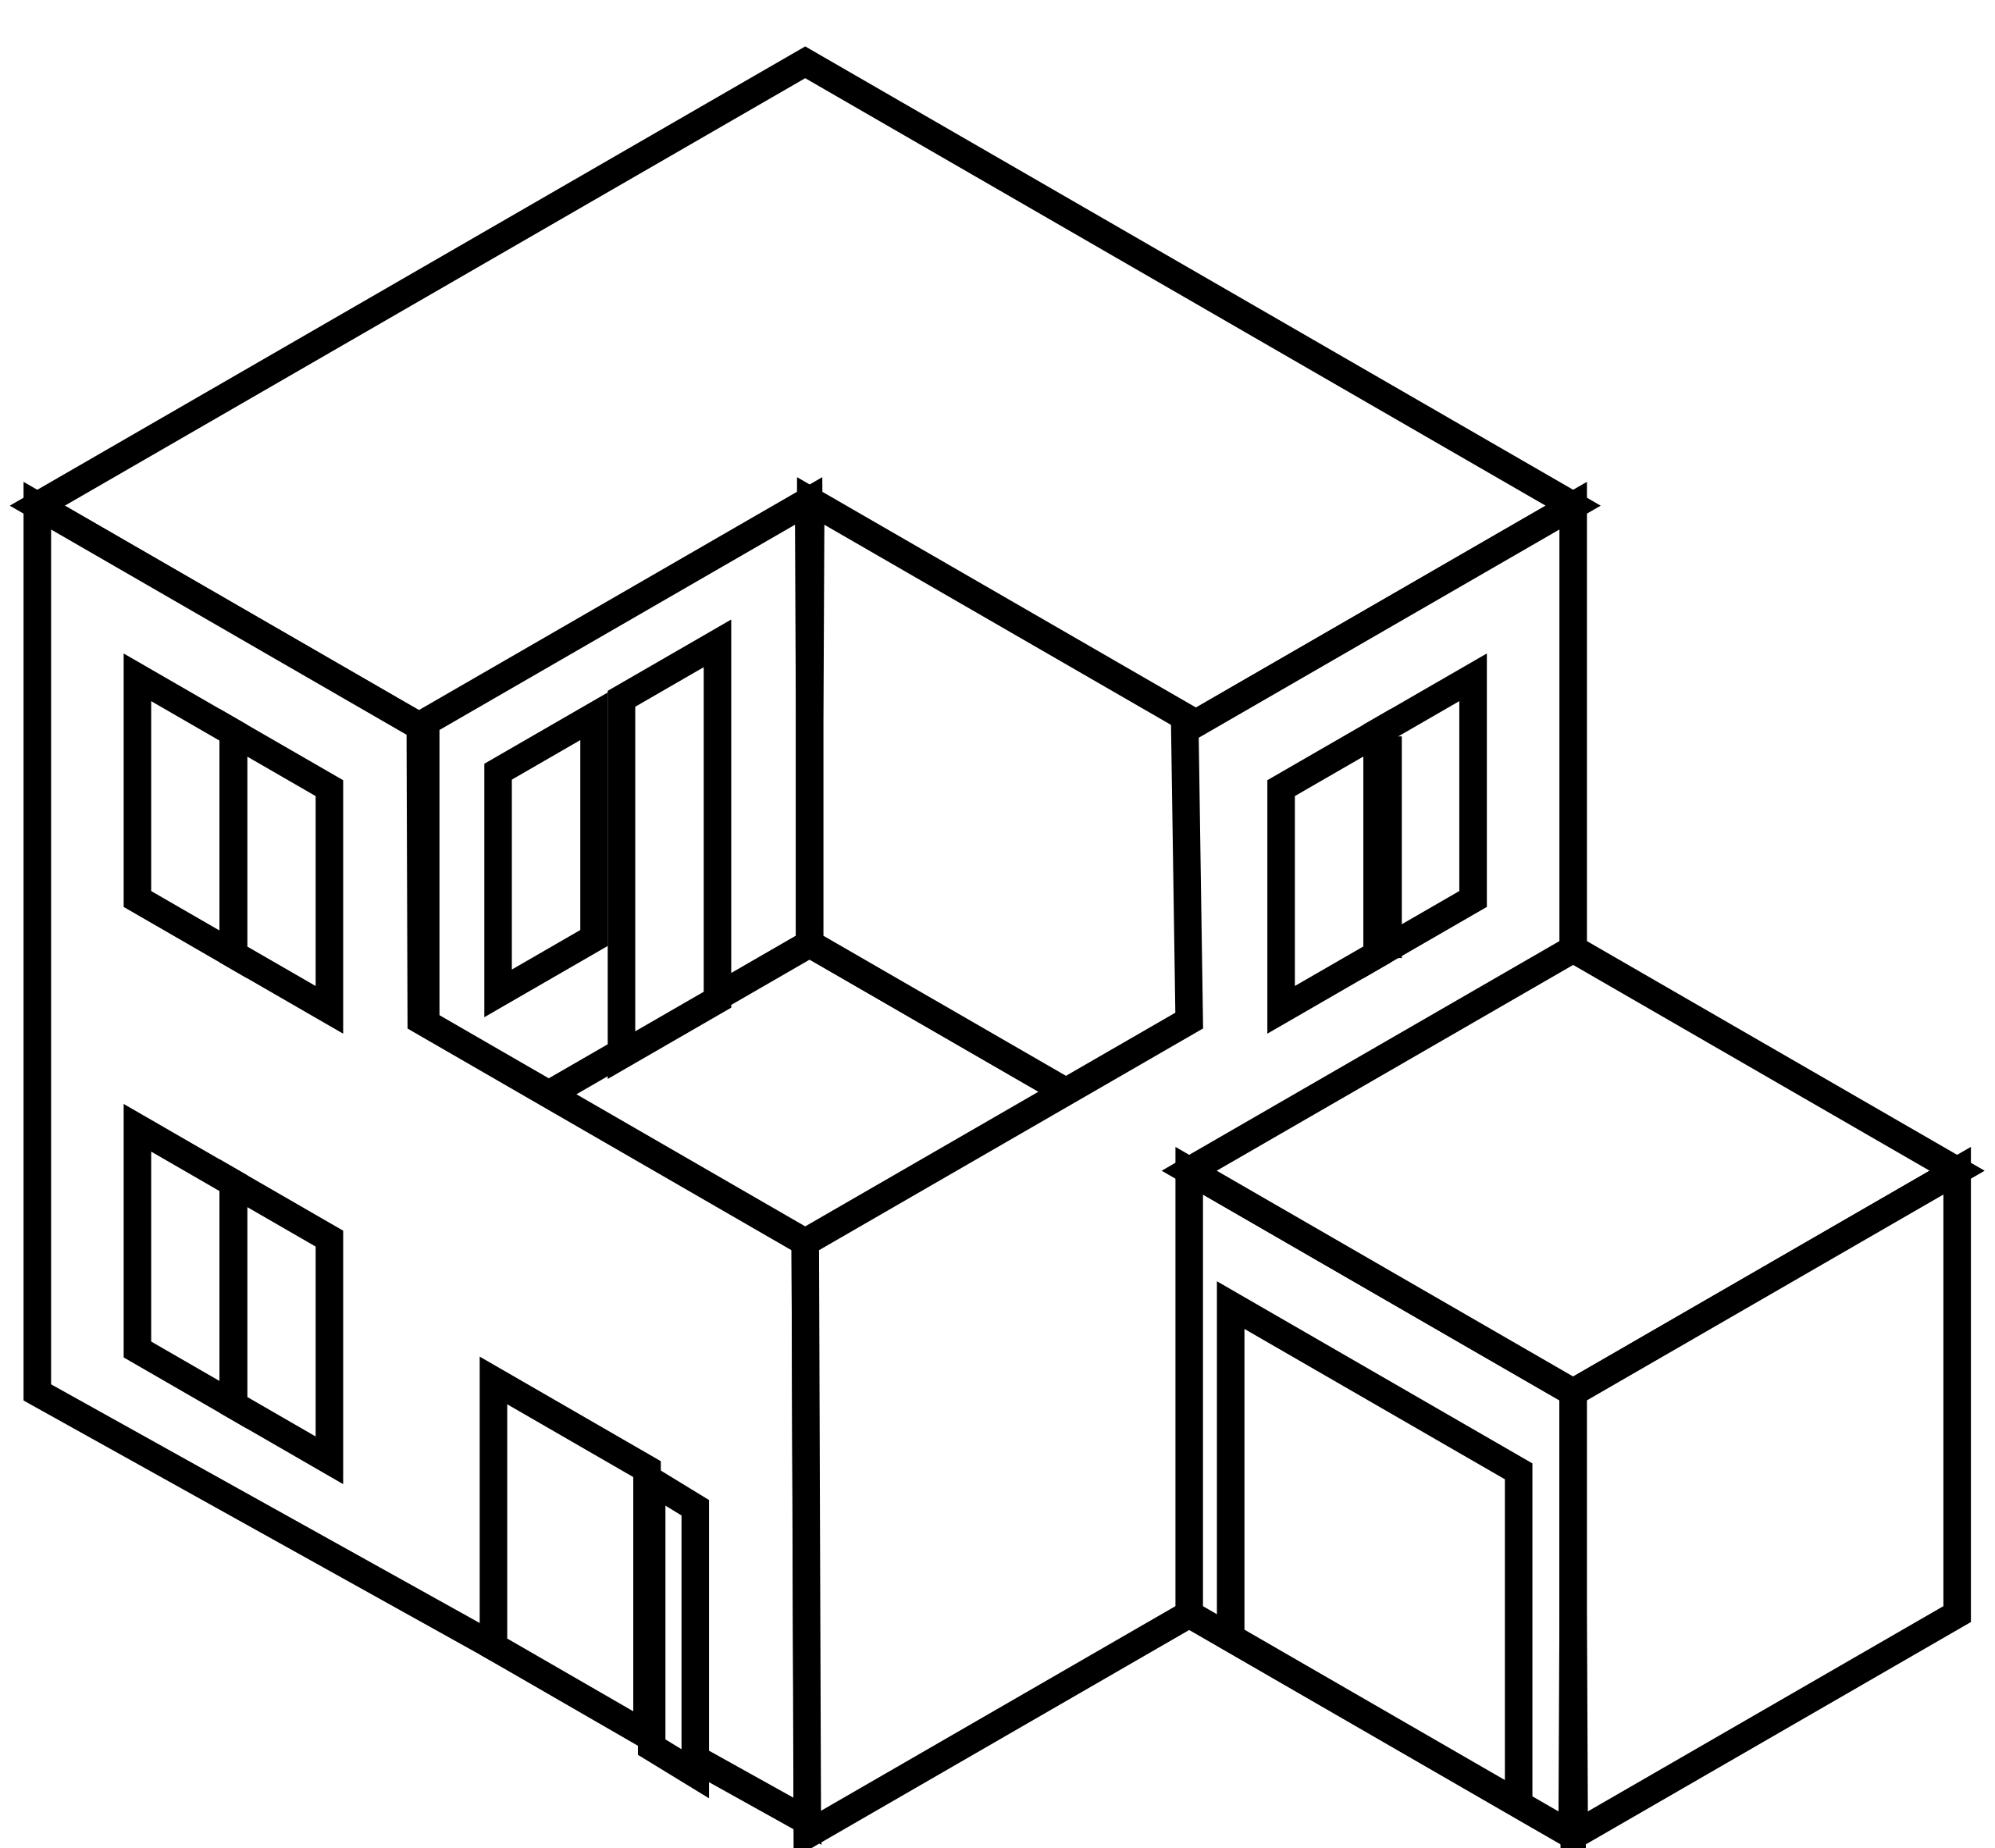 Line Art House Png : D isometric line drawing of a double fronted single story